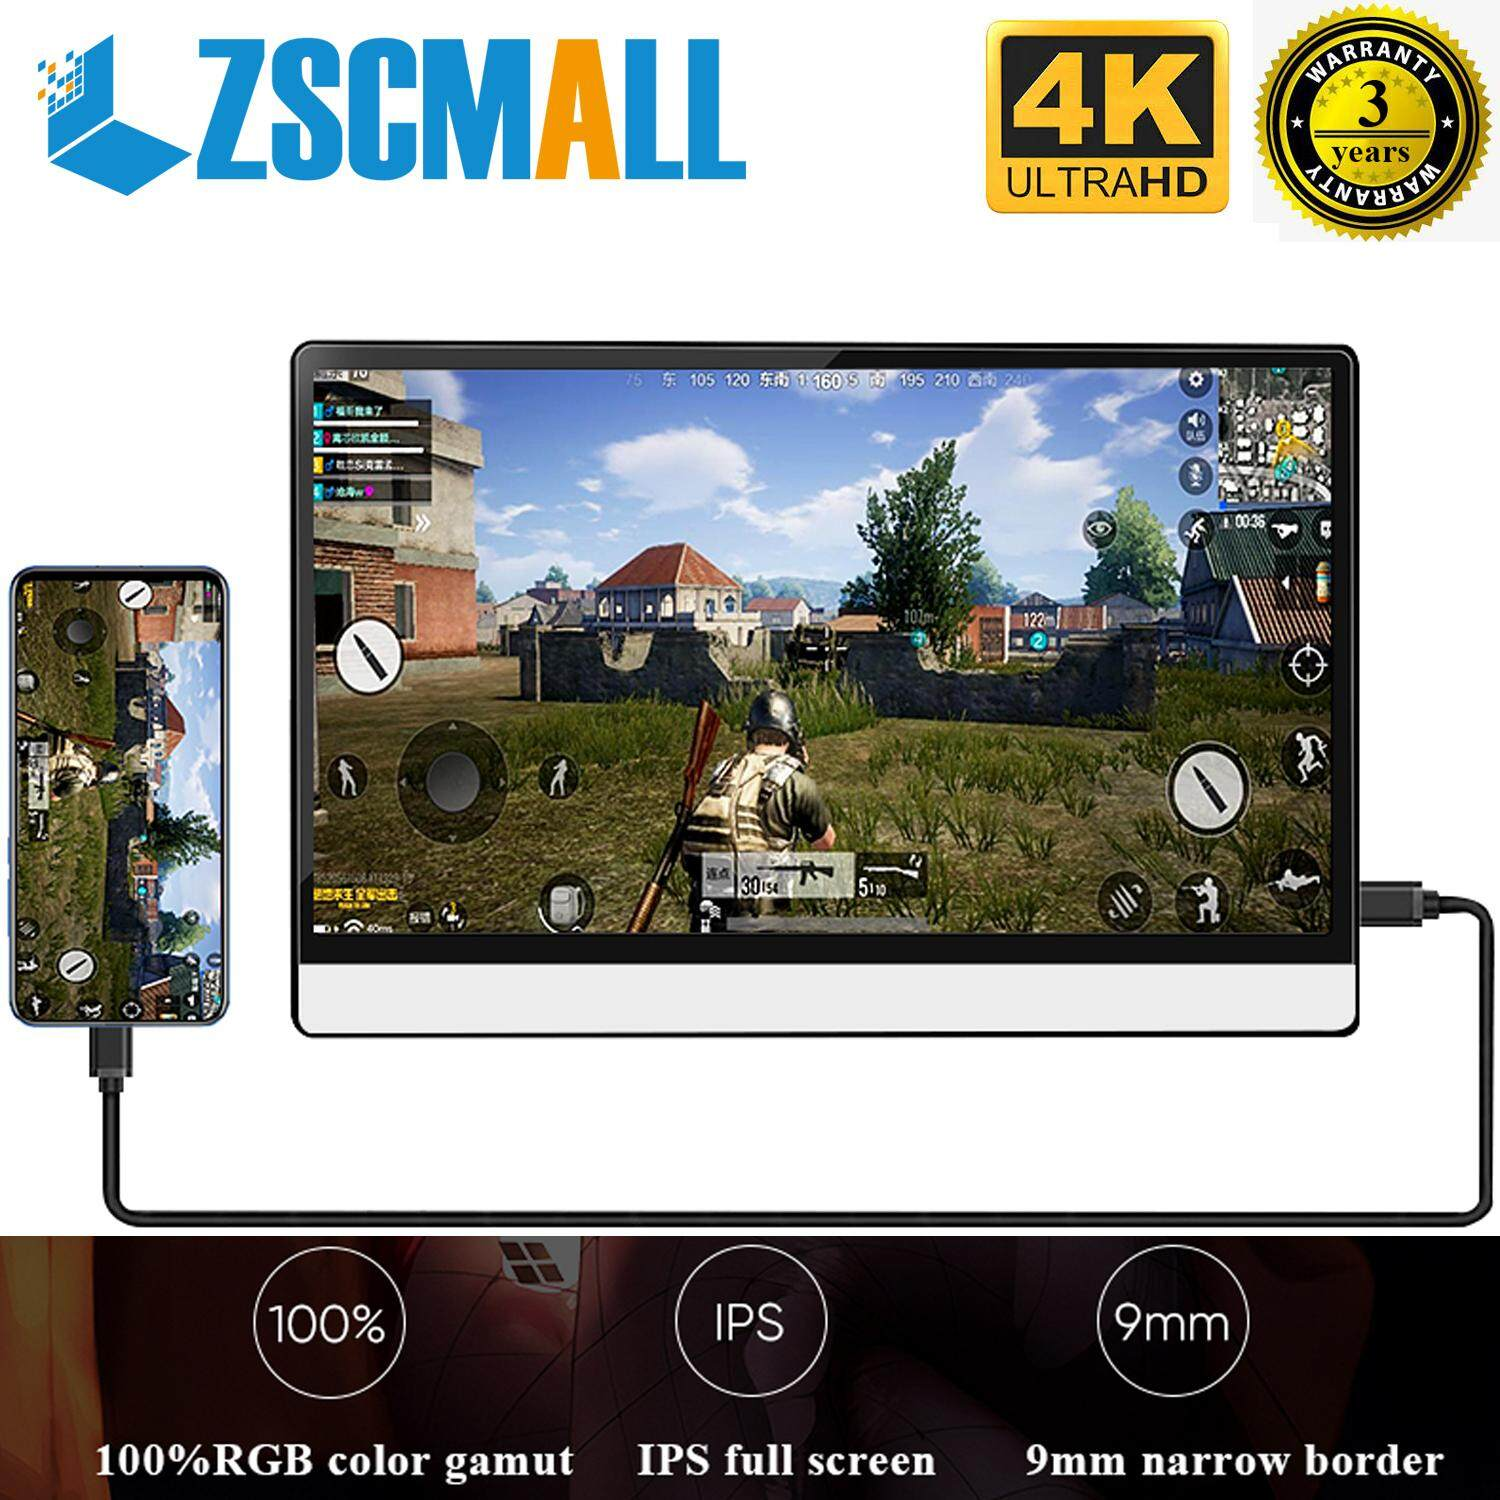 ZSCMALL 13.3   4K Portable Touchscreen Monitor, 3840x2160 IPS HDMI Gaming Monitor compatible for Xbox One Xbox 360 PS3 PS4 WiiU Switch Raspberry Pi Mini PC Laptop 144HZ Malaysia